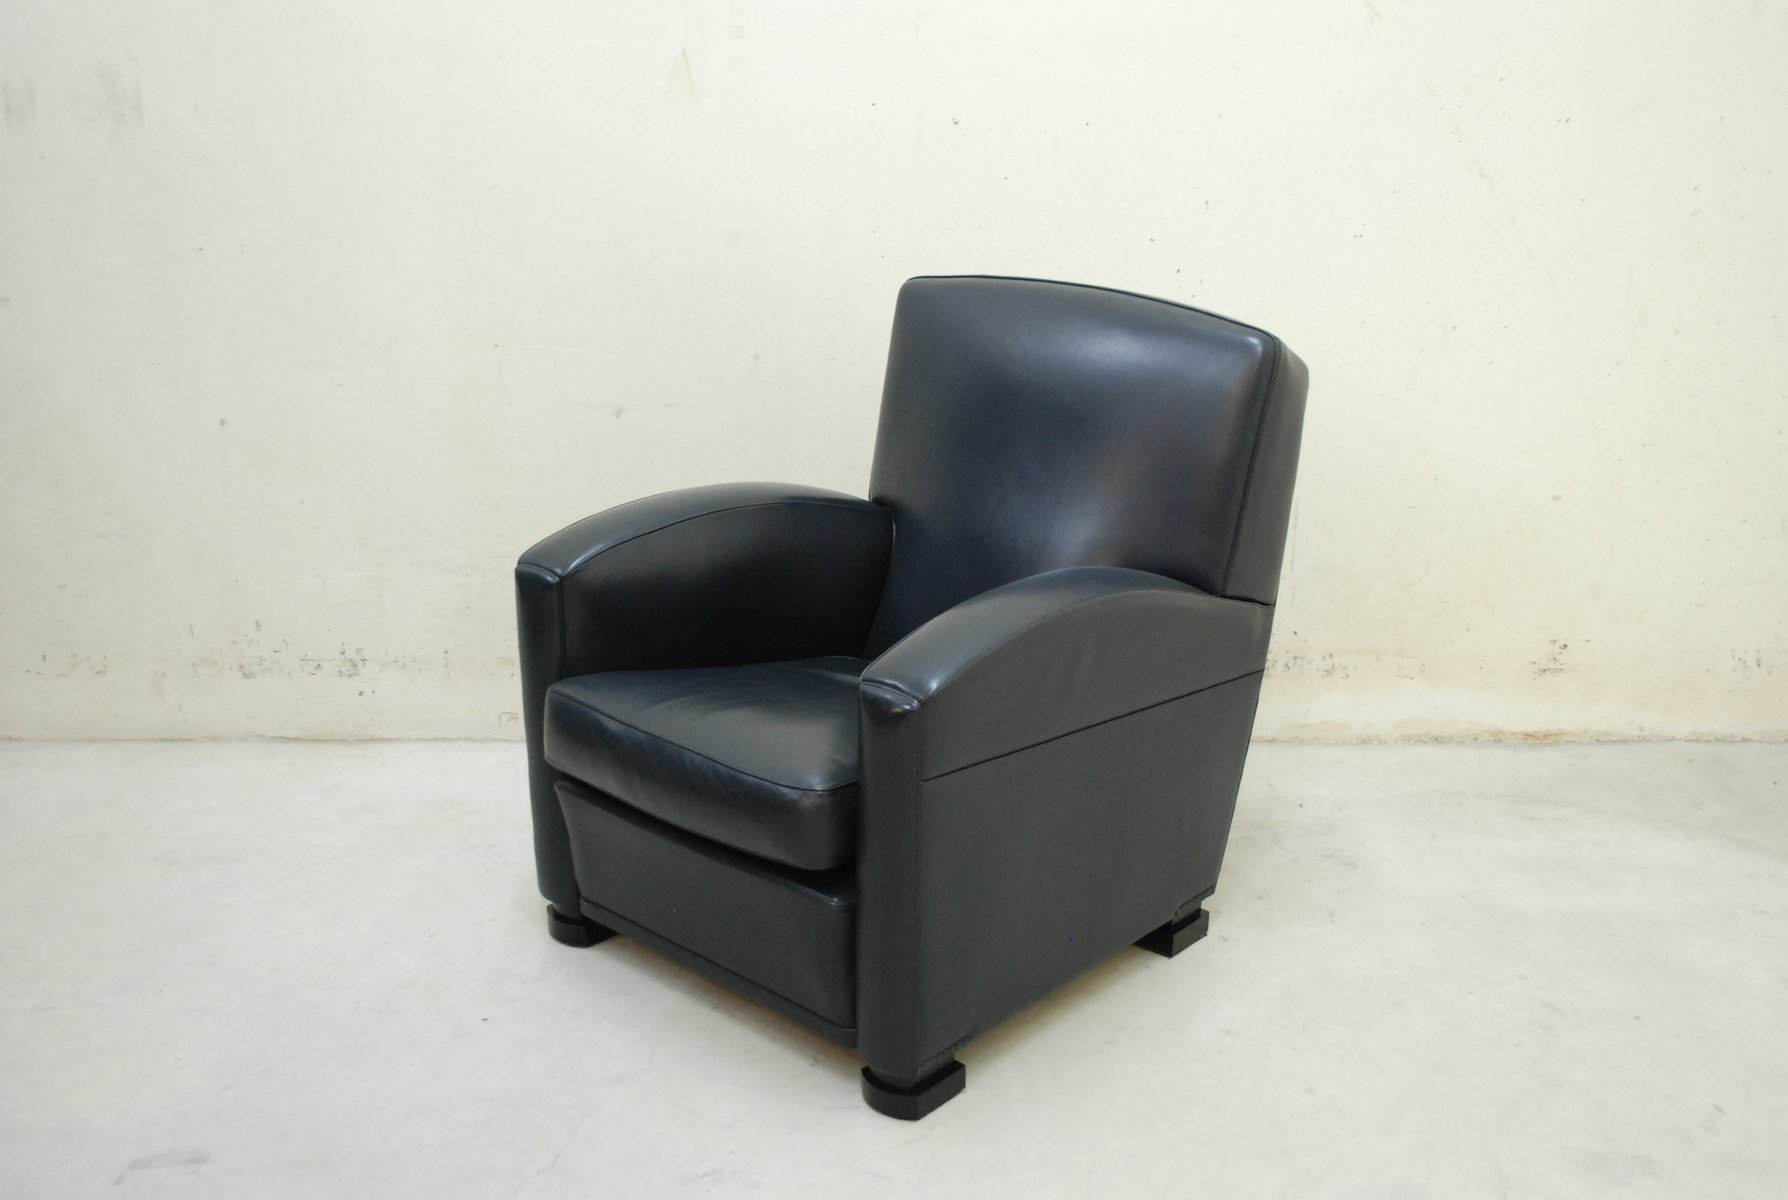 italian tabarin leather armchair from poltrona frau 1985. Black Bedroom Furniture Sets. Home Design Ideas